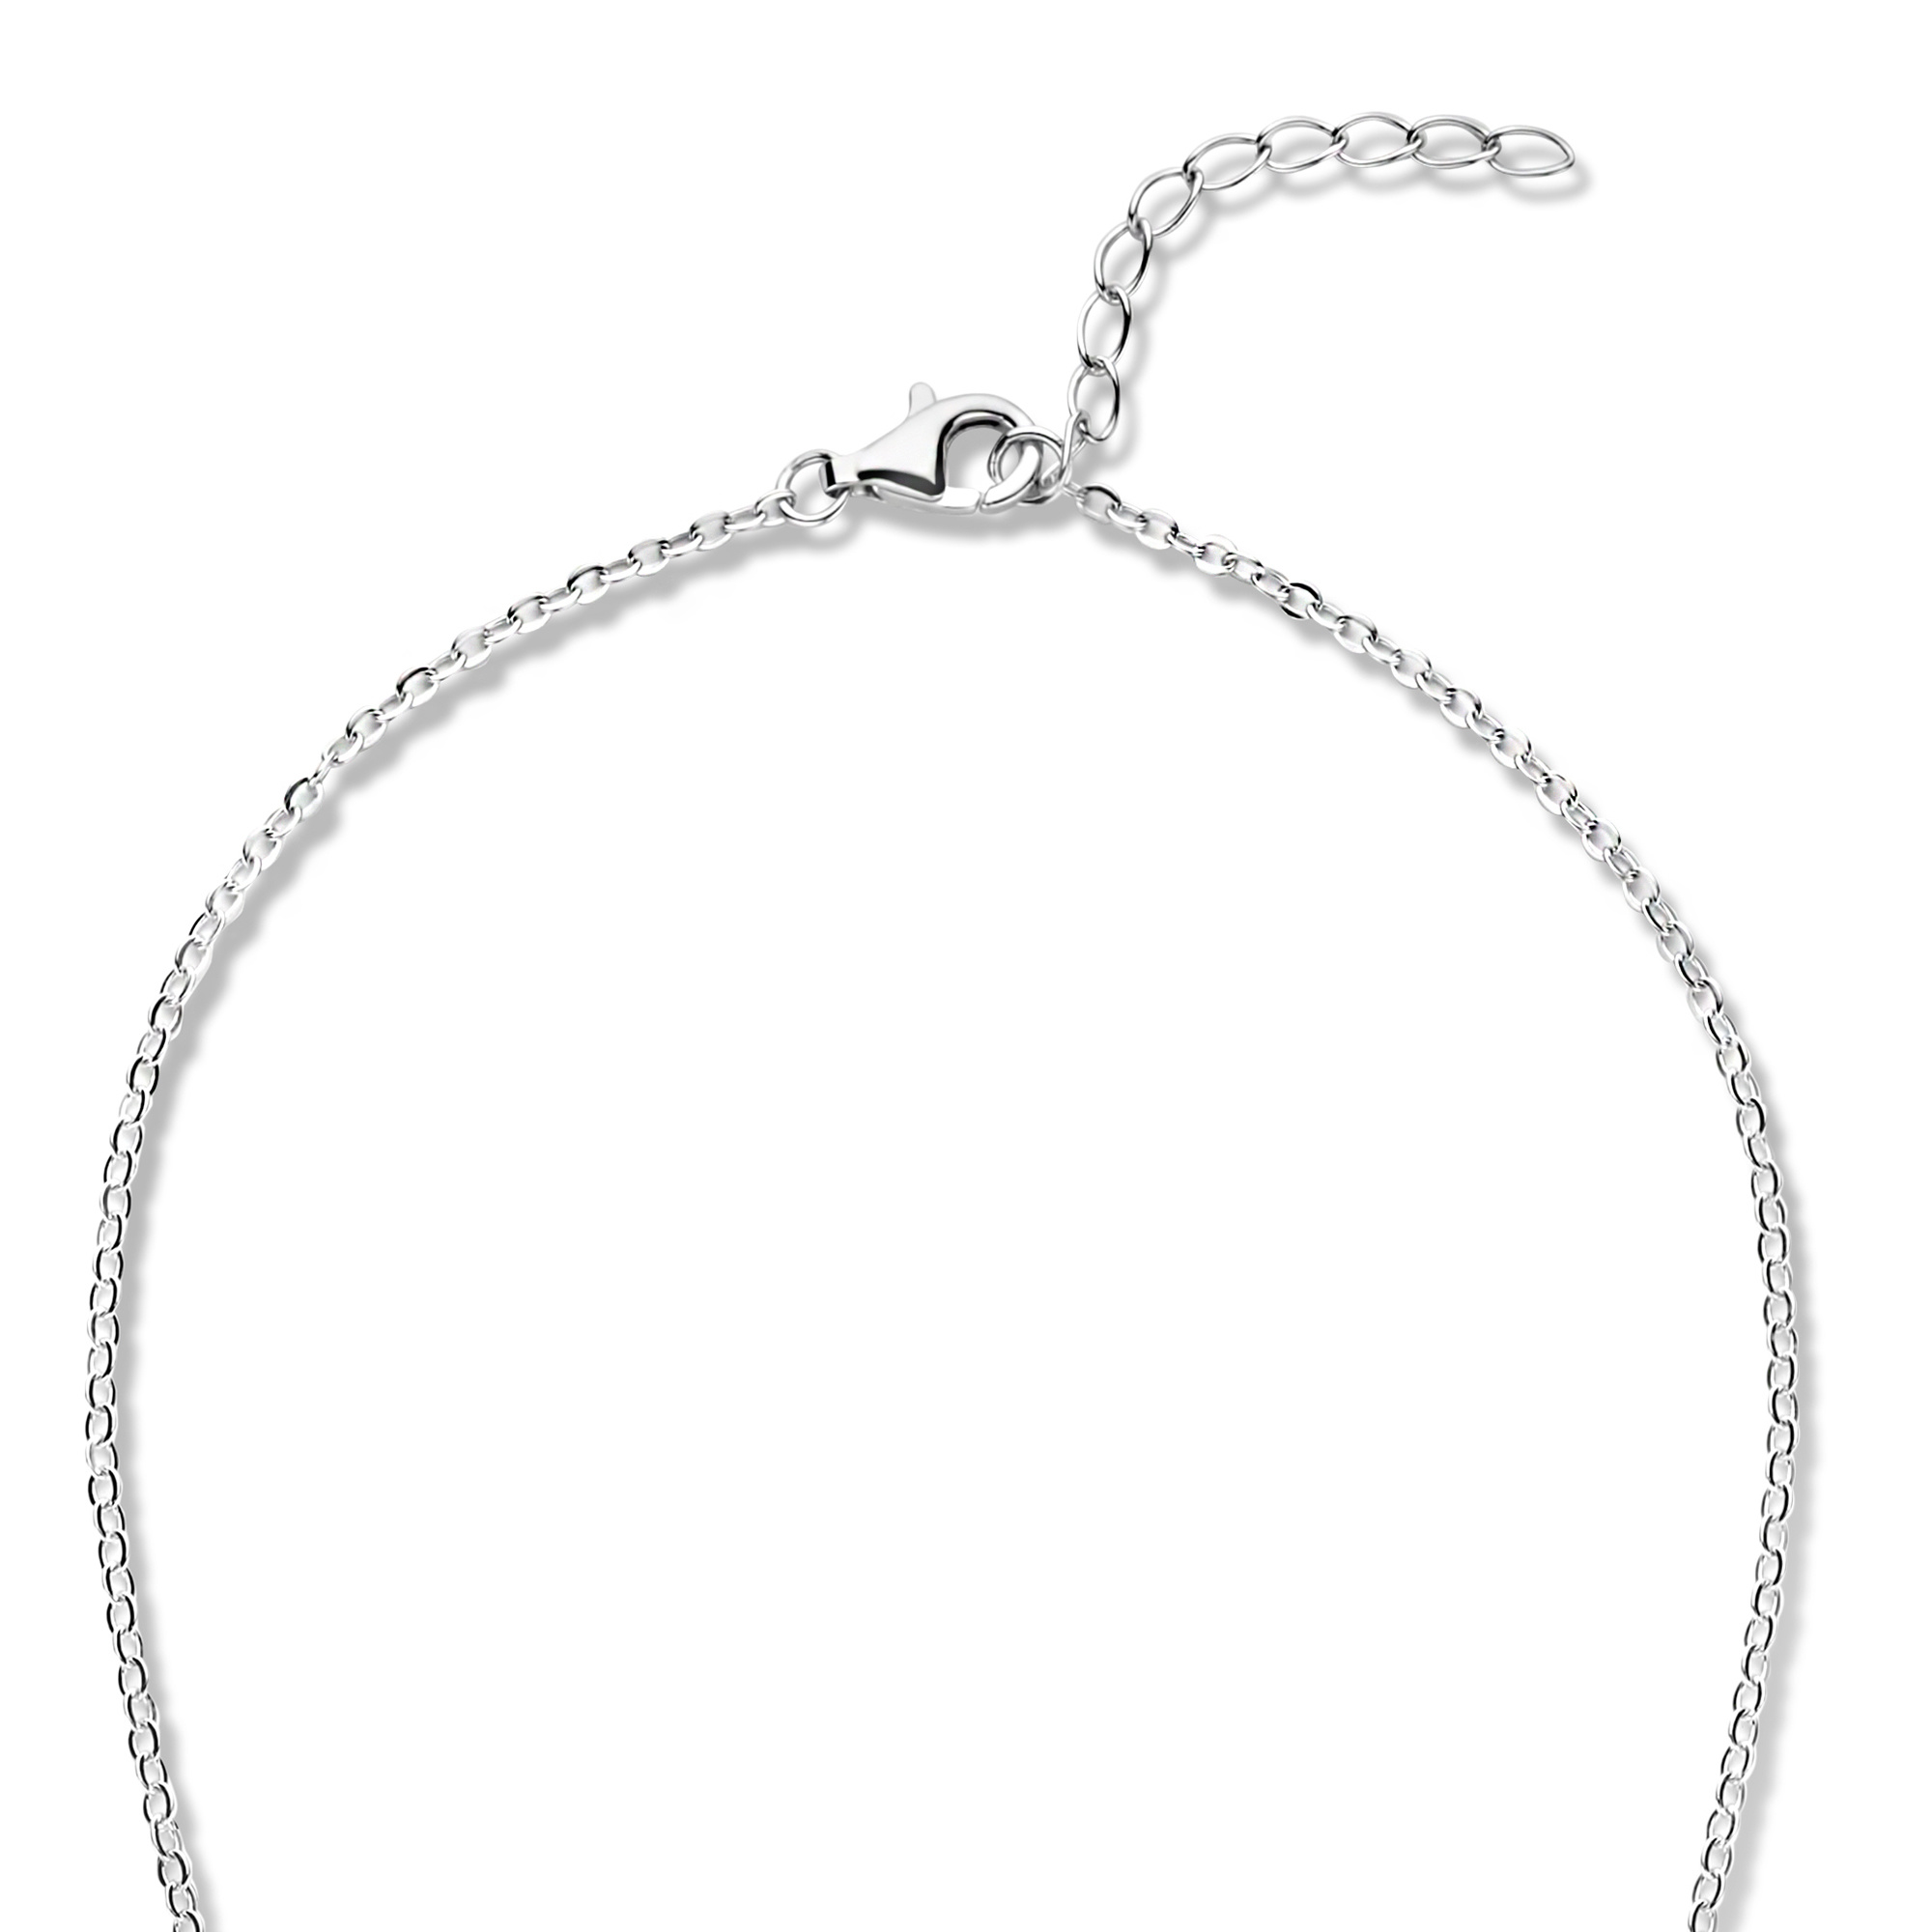 Selected Jewels Mila Sophie 925 sterling silver necklace with black onyx